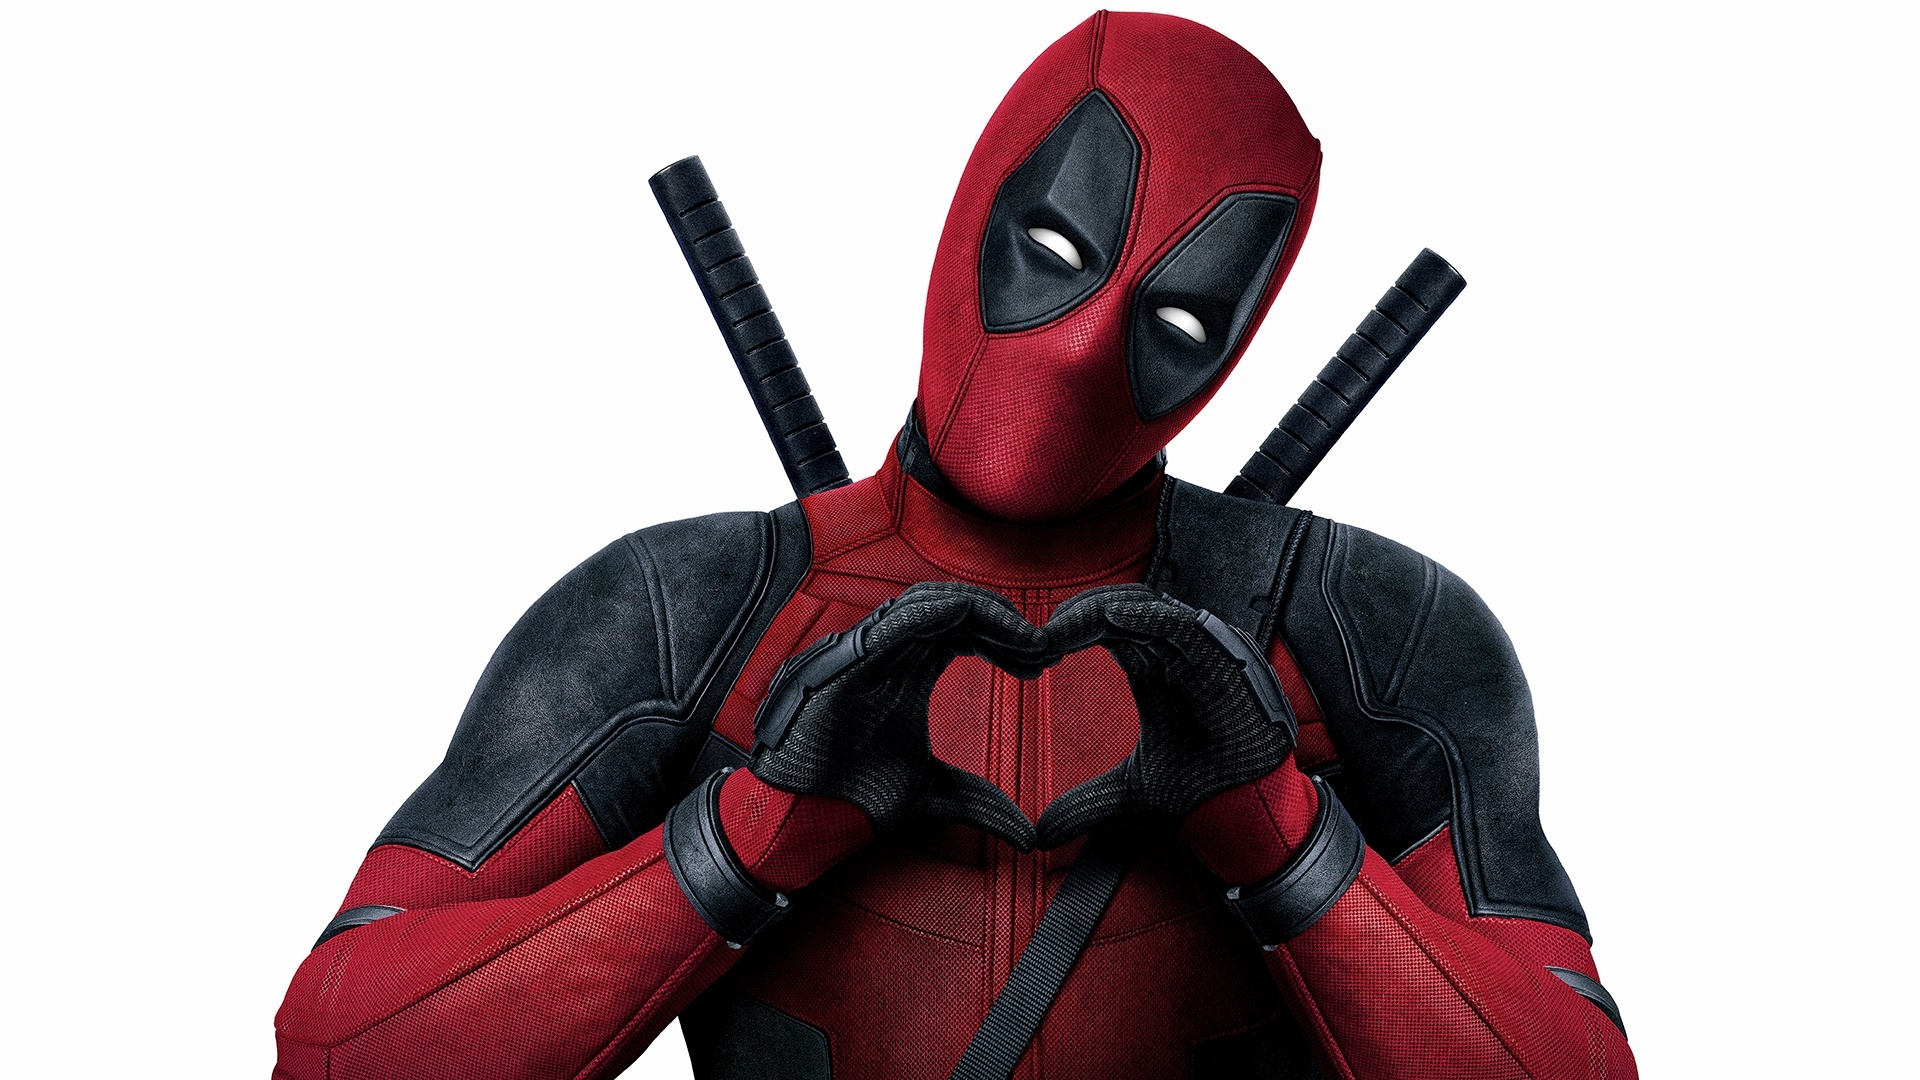 Awesome-Deadpool-Heart-1920x1080-wallpaper-wpc9002454